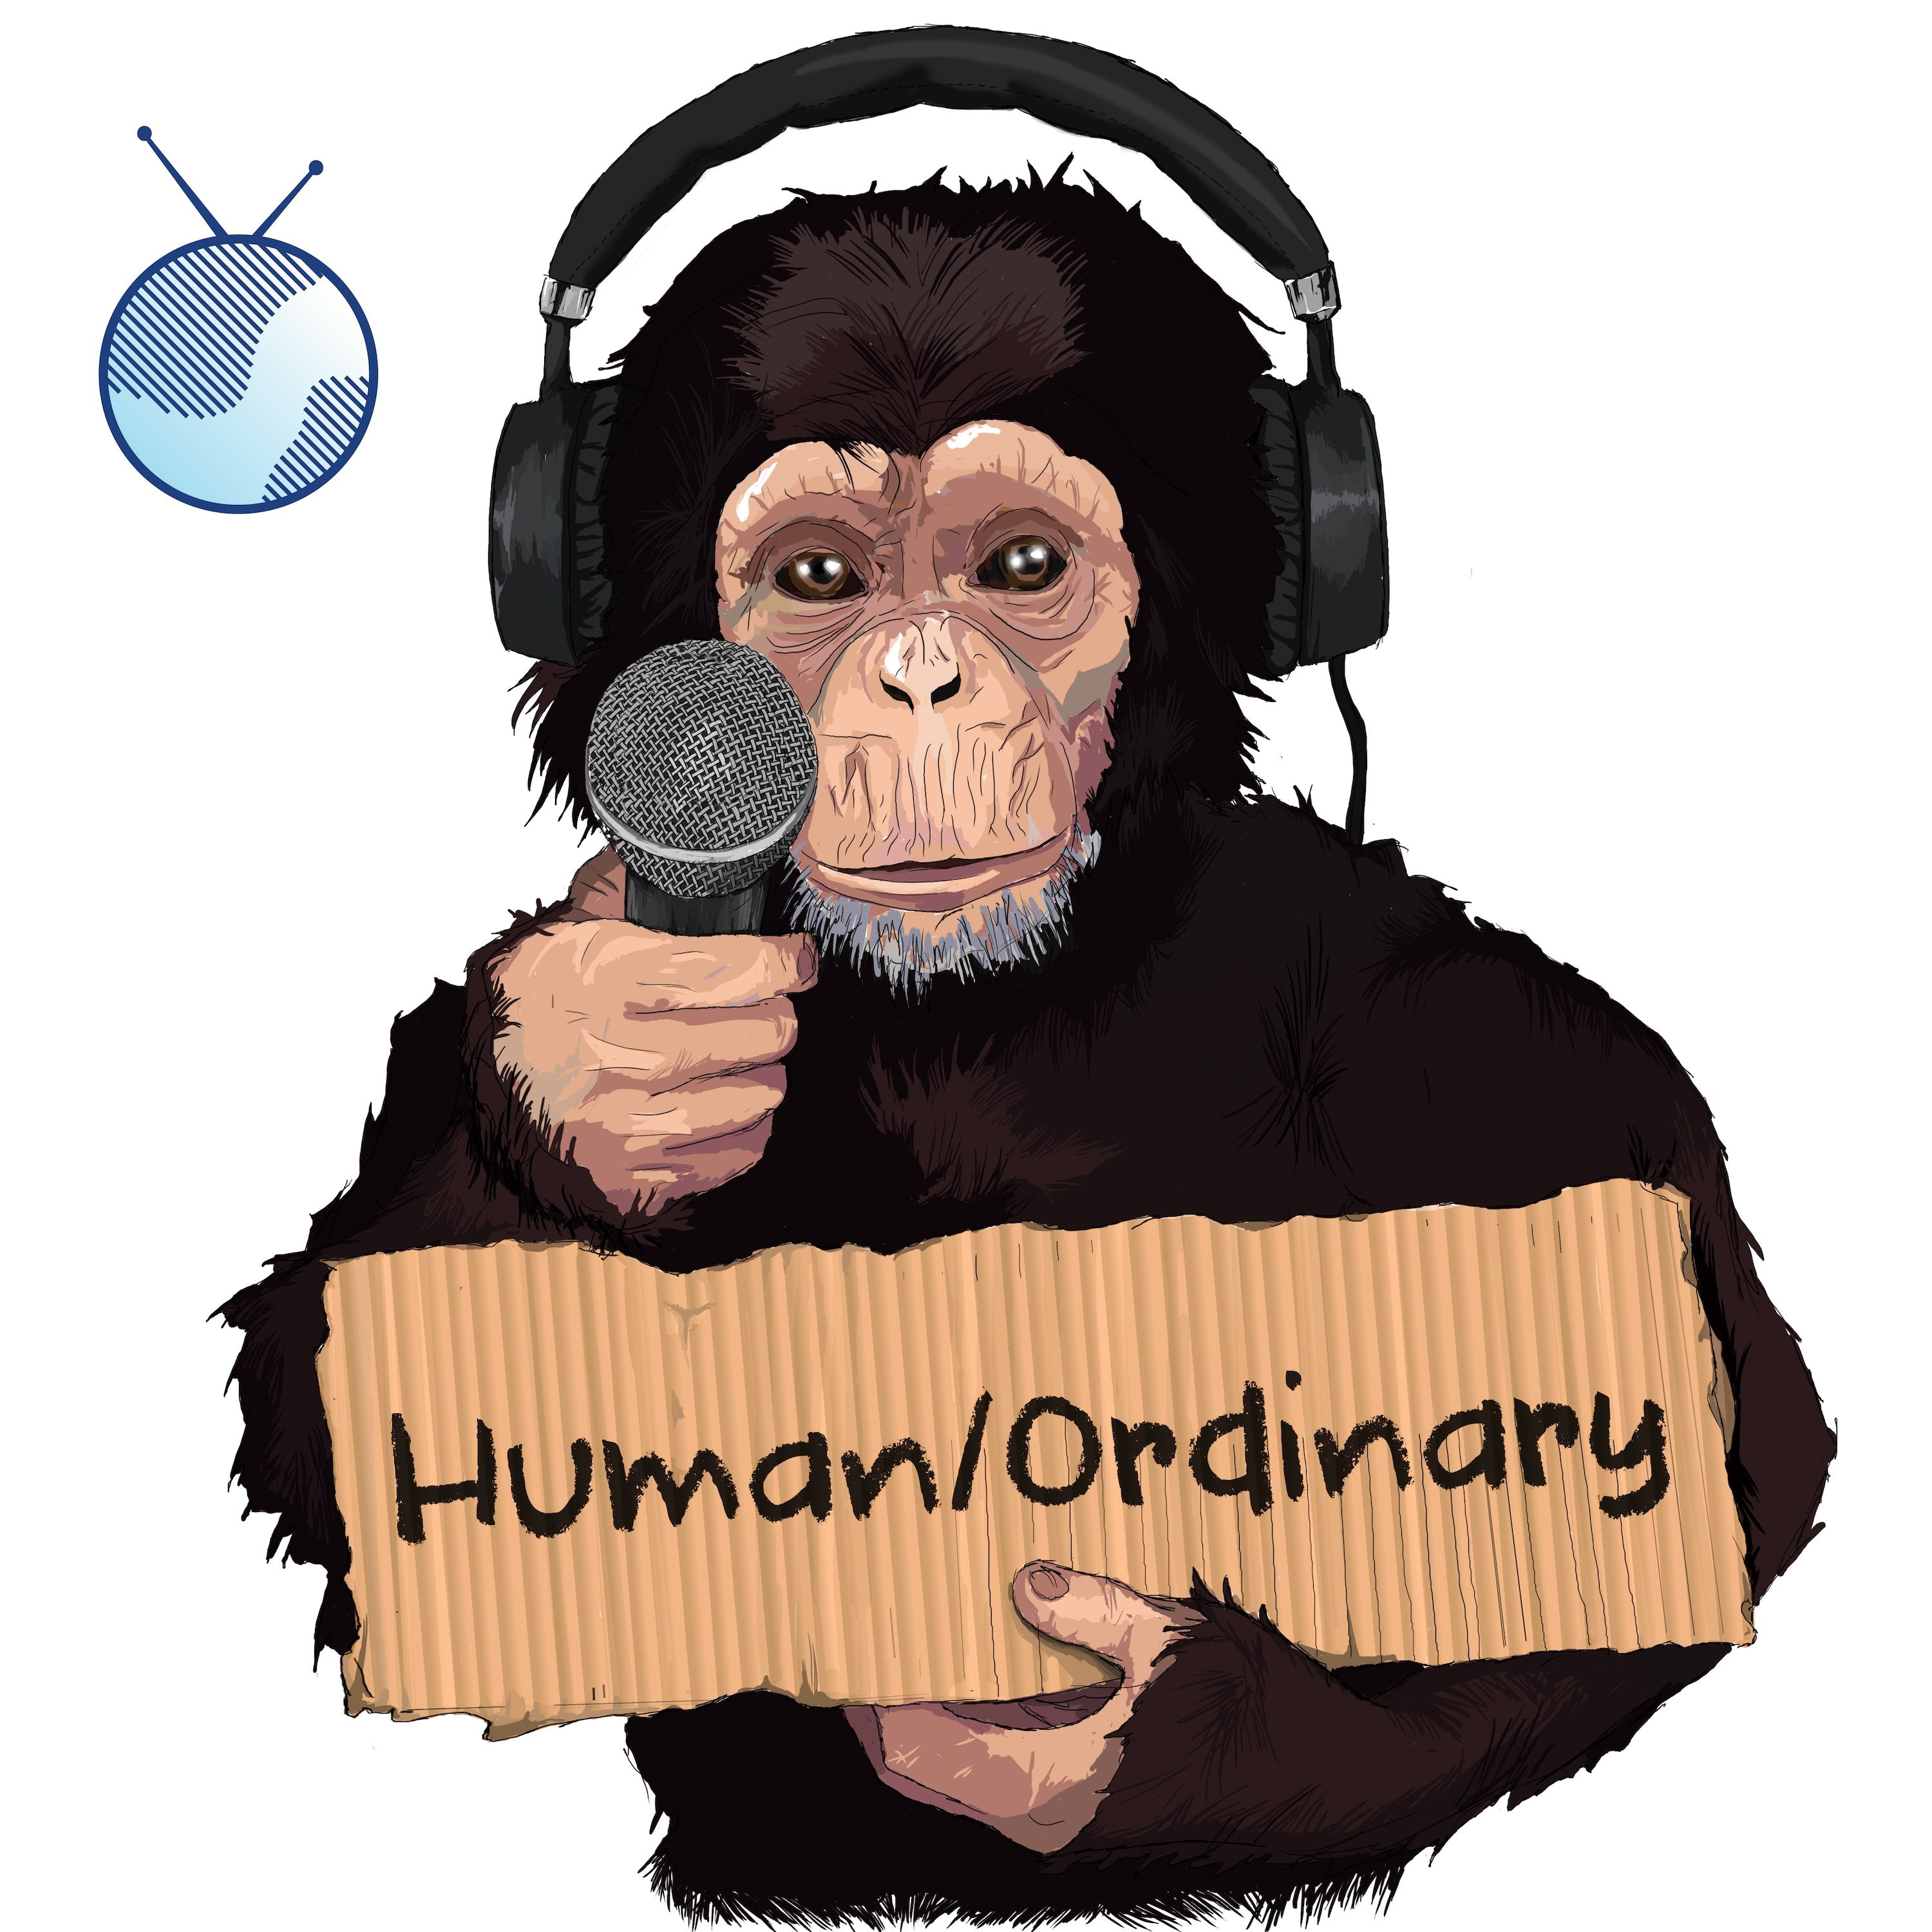 Human/Ordinary